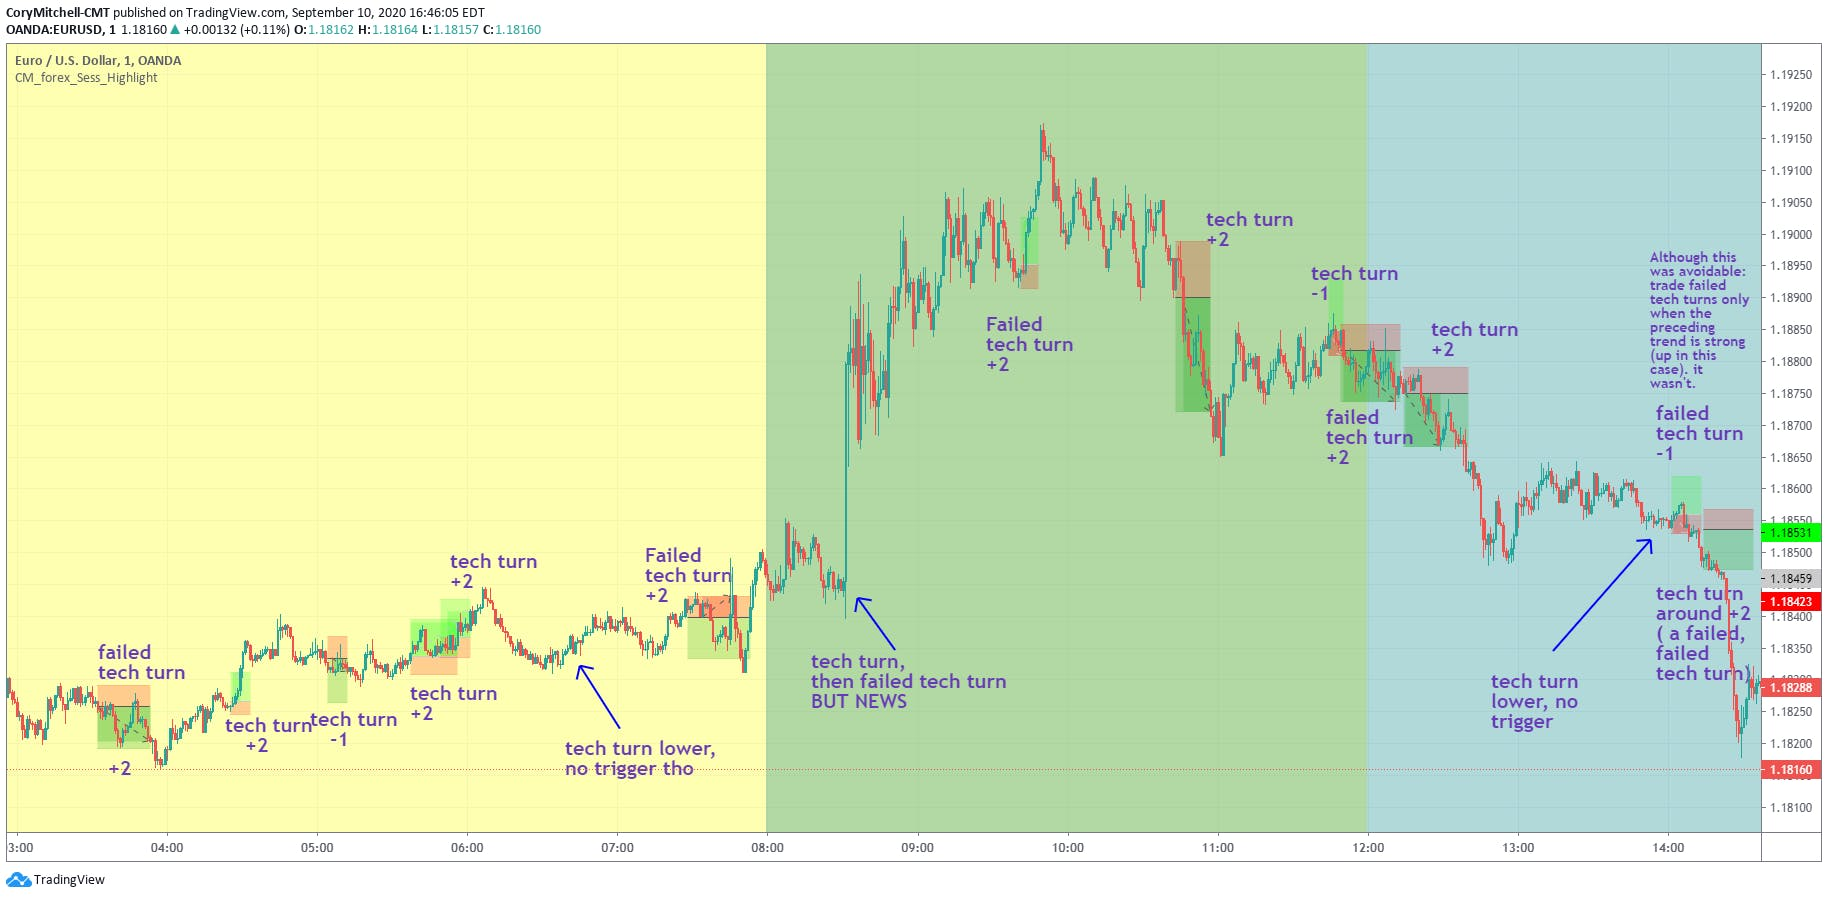 technical turnaround and failed technical turnaround day trading strategy examples in EURUSD